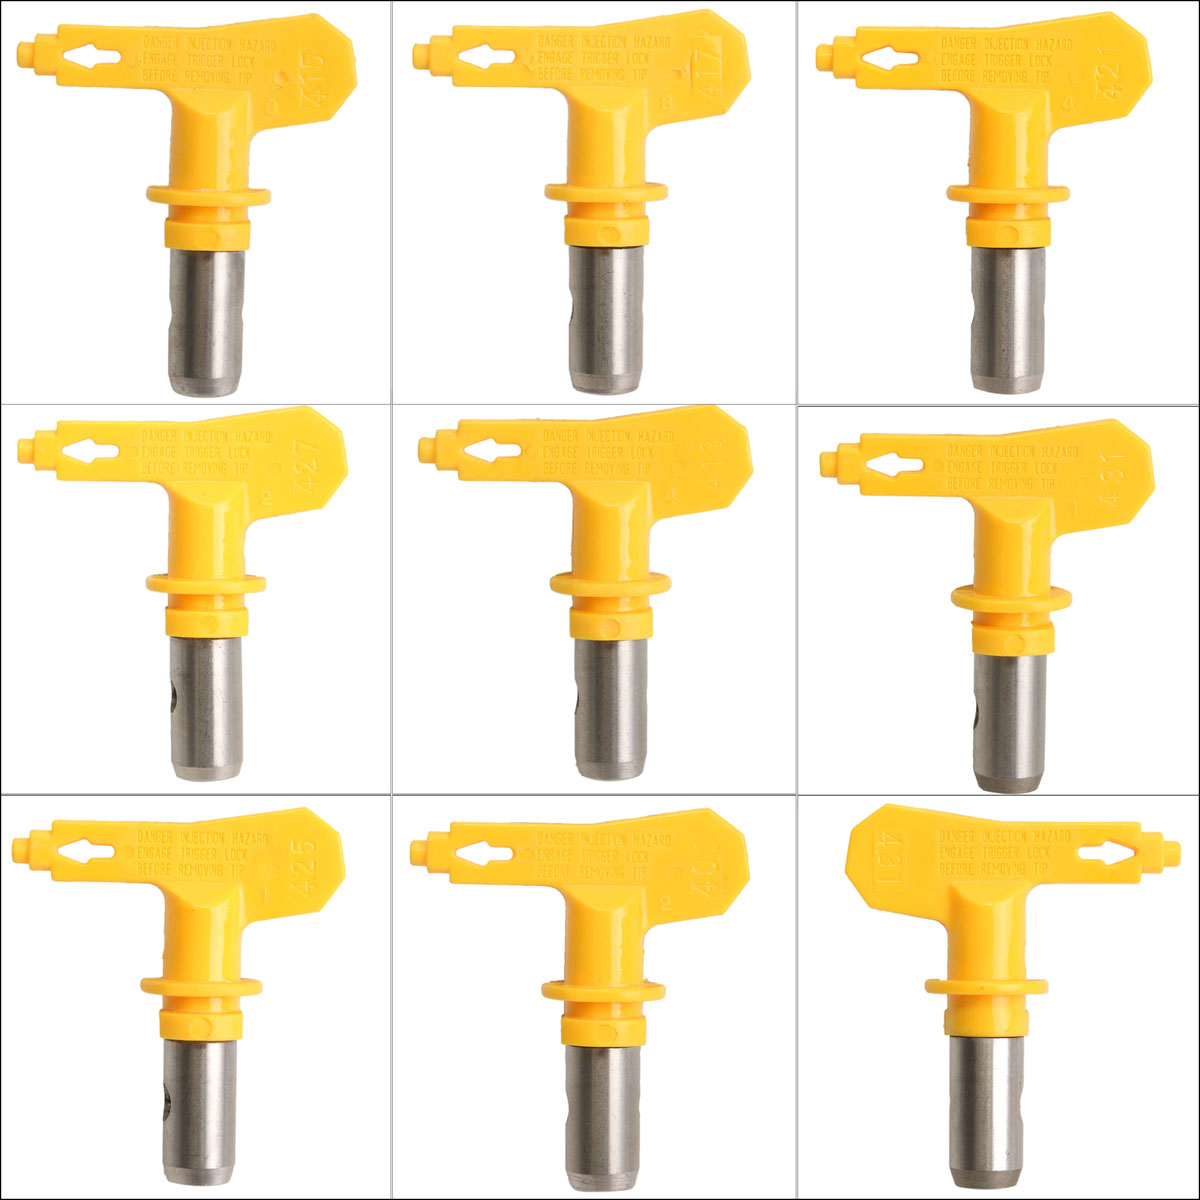 Yellow 4 Series 431/421/417/419 Airless Spray Tip Sprayer Nozzles For Airless Spray G Un And Paint Sprayer